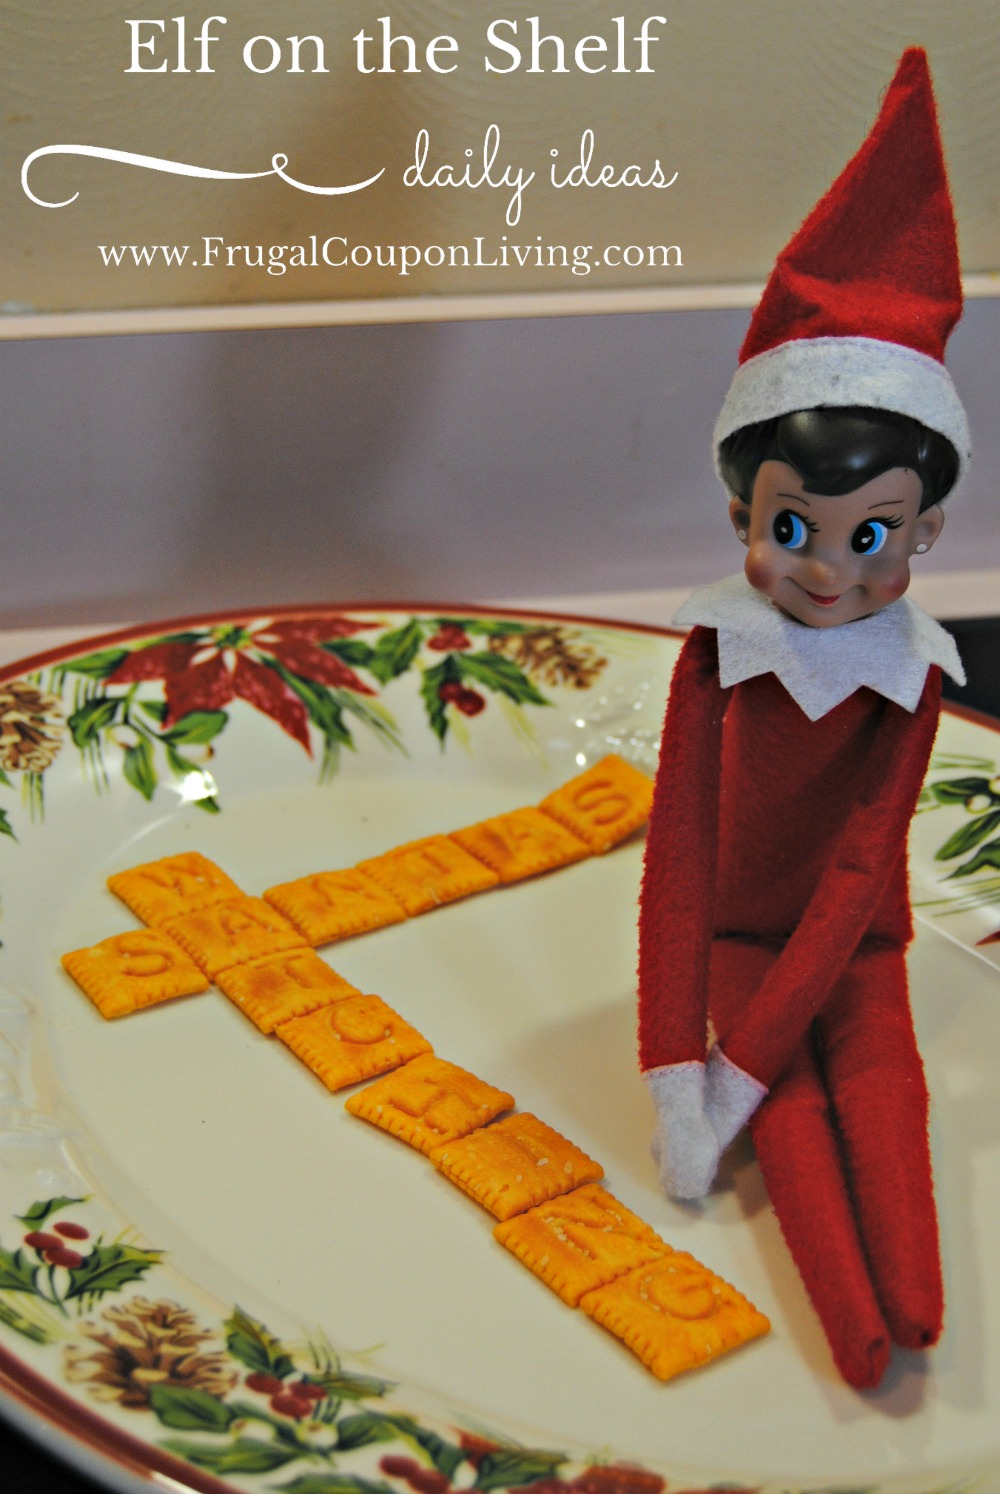 santas-watching-scrabble-elf-on-the-shelf-ideas-frugal-coupon-living